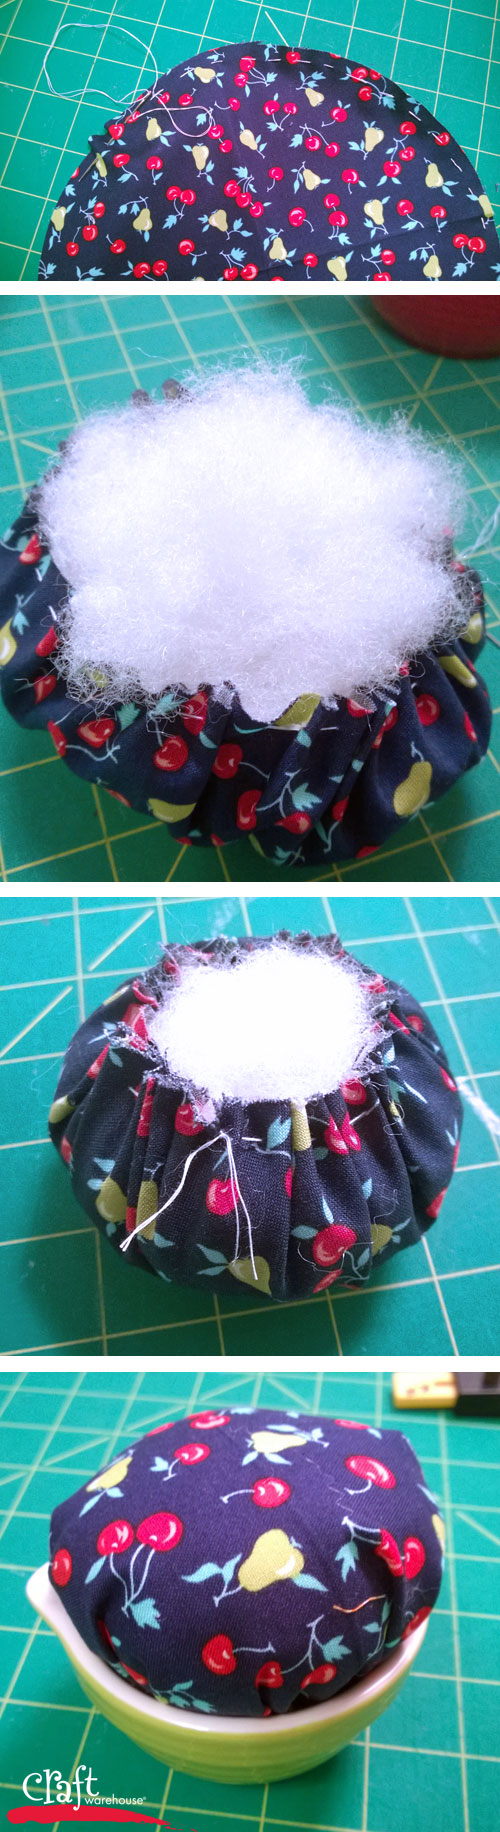 How to Make Measuring Cup Pin Cushions